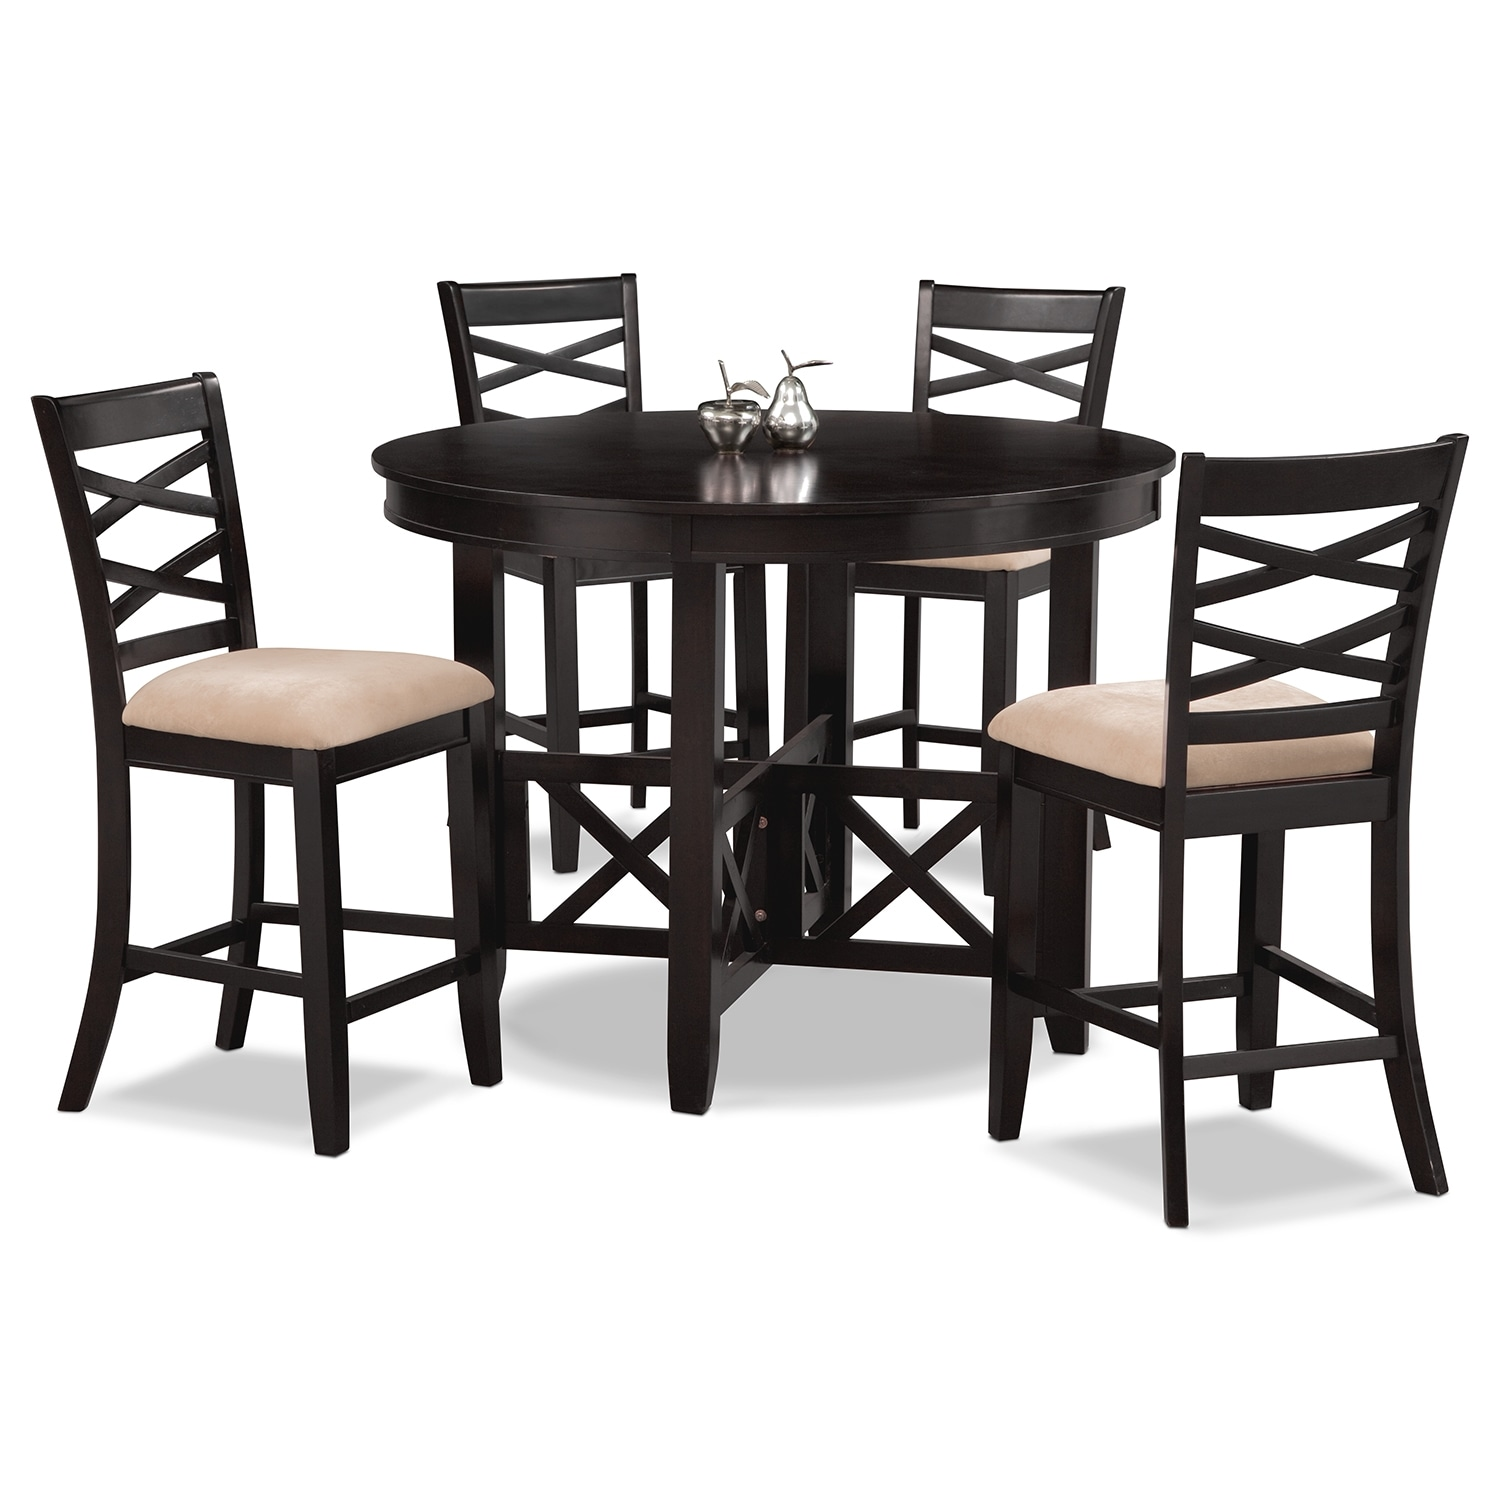 Impressive Value City Furniture Dining Room Sets: Americana Espresso 5 Pc. Counter-Height Dinette